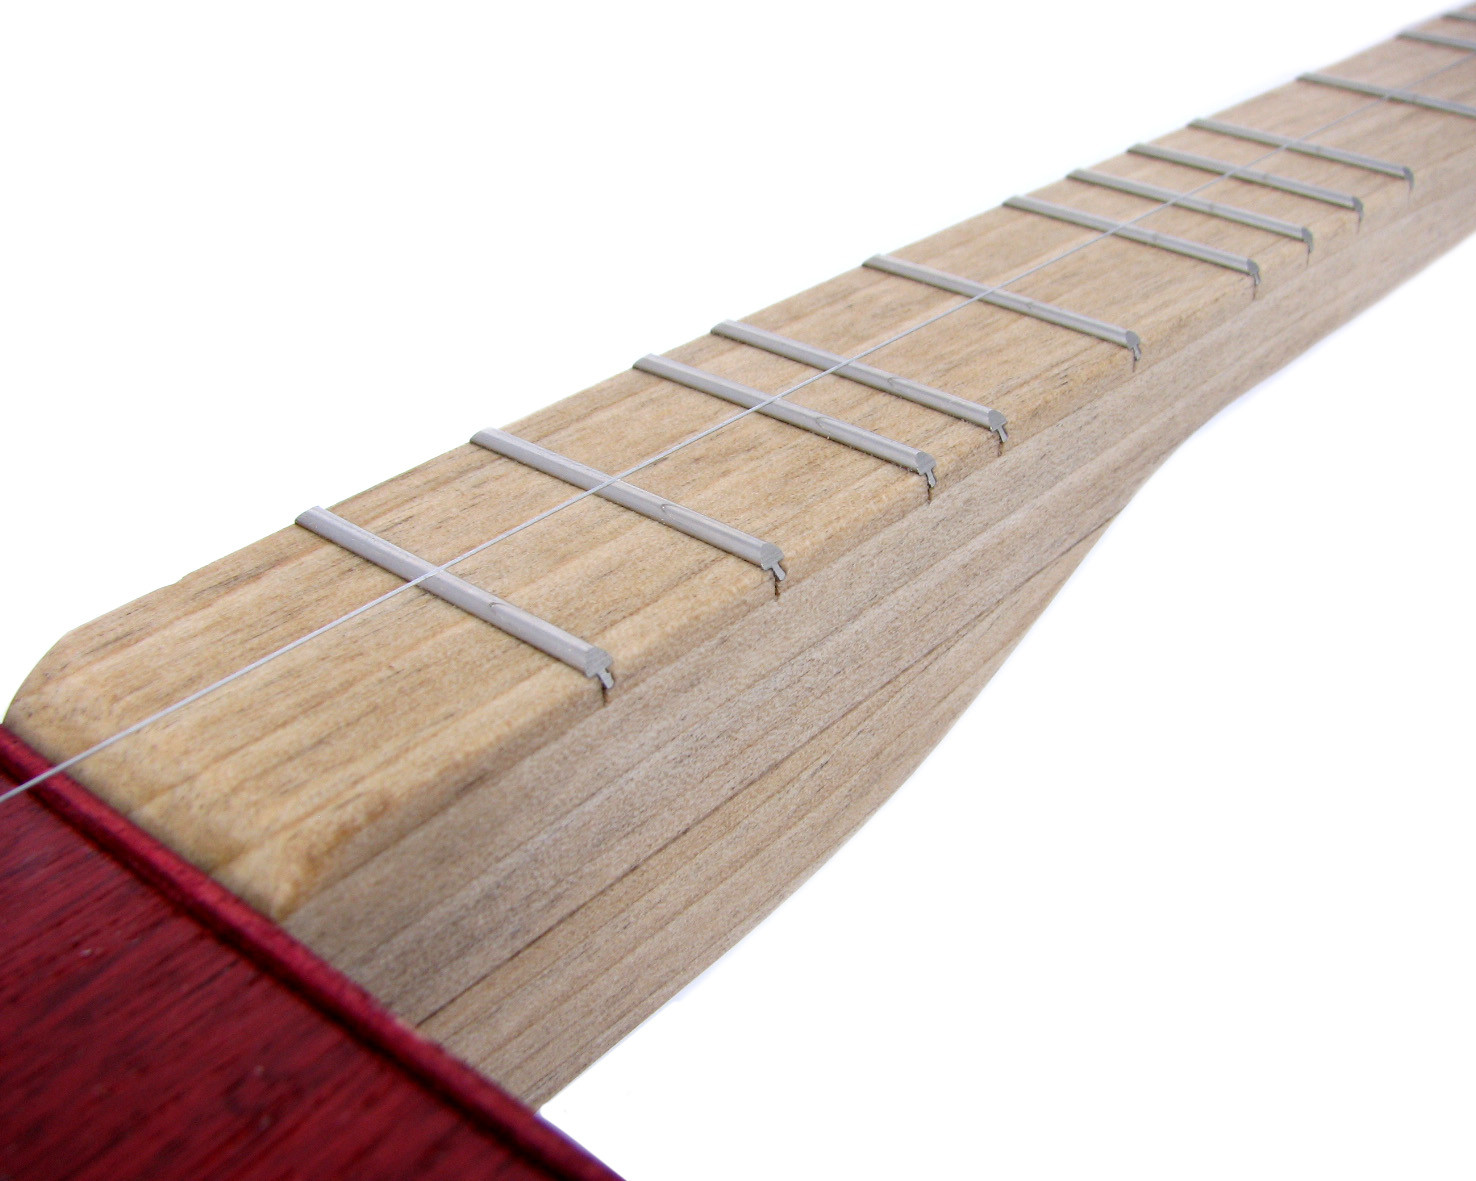 Diatonic (Dulcimer-Style) Fretting – What it is, How and Why to Use It